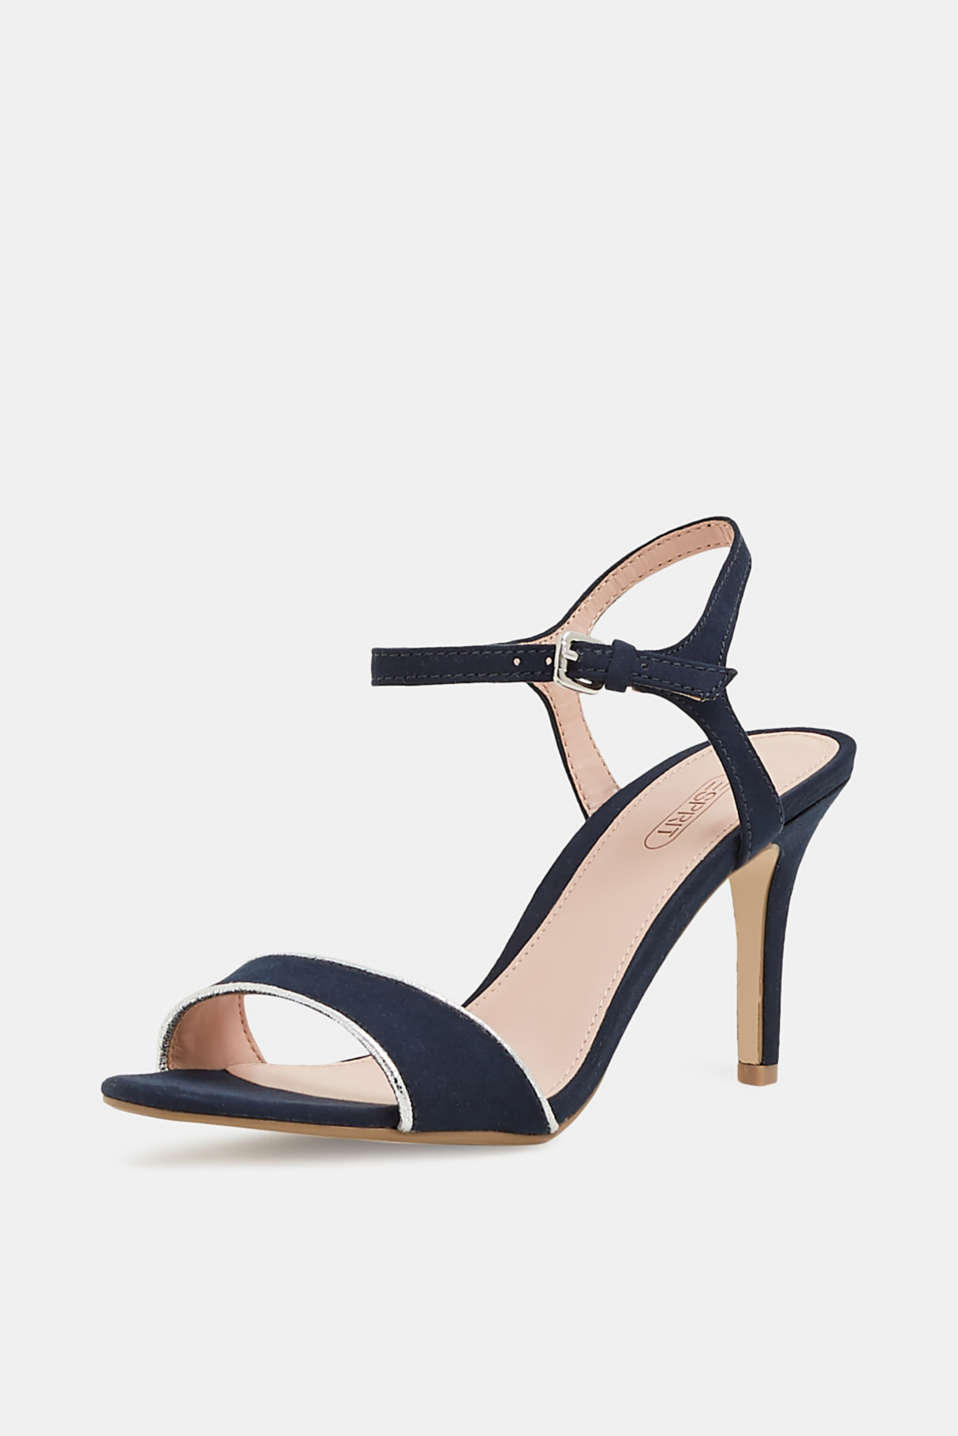 Suede sandals with metallic accents, NAVY 5, detail image number 2